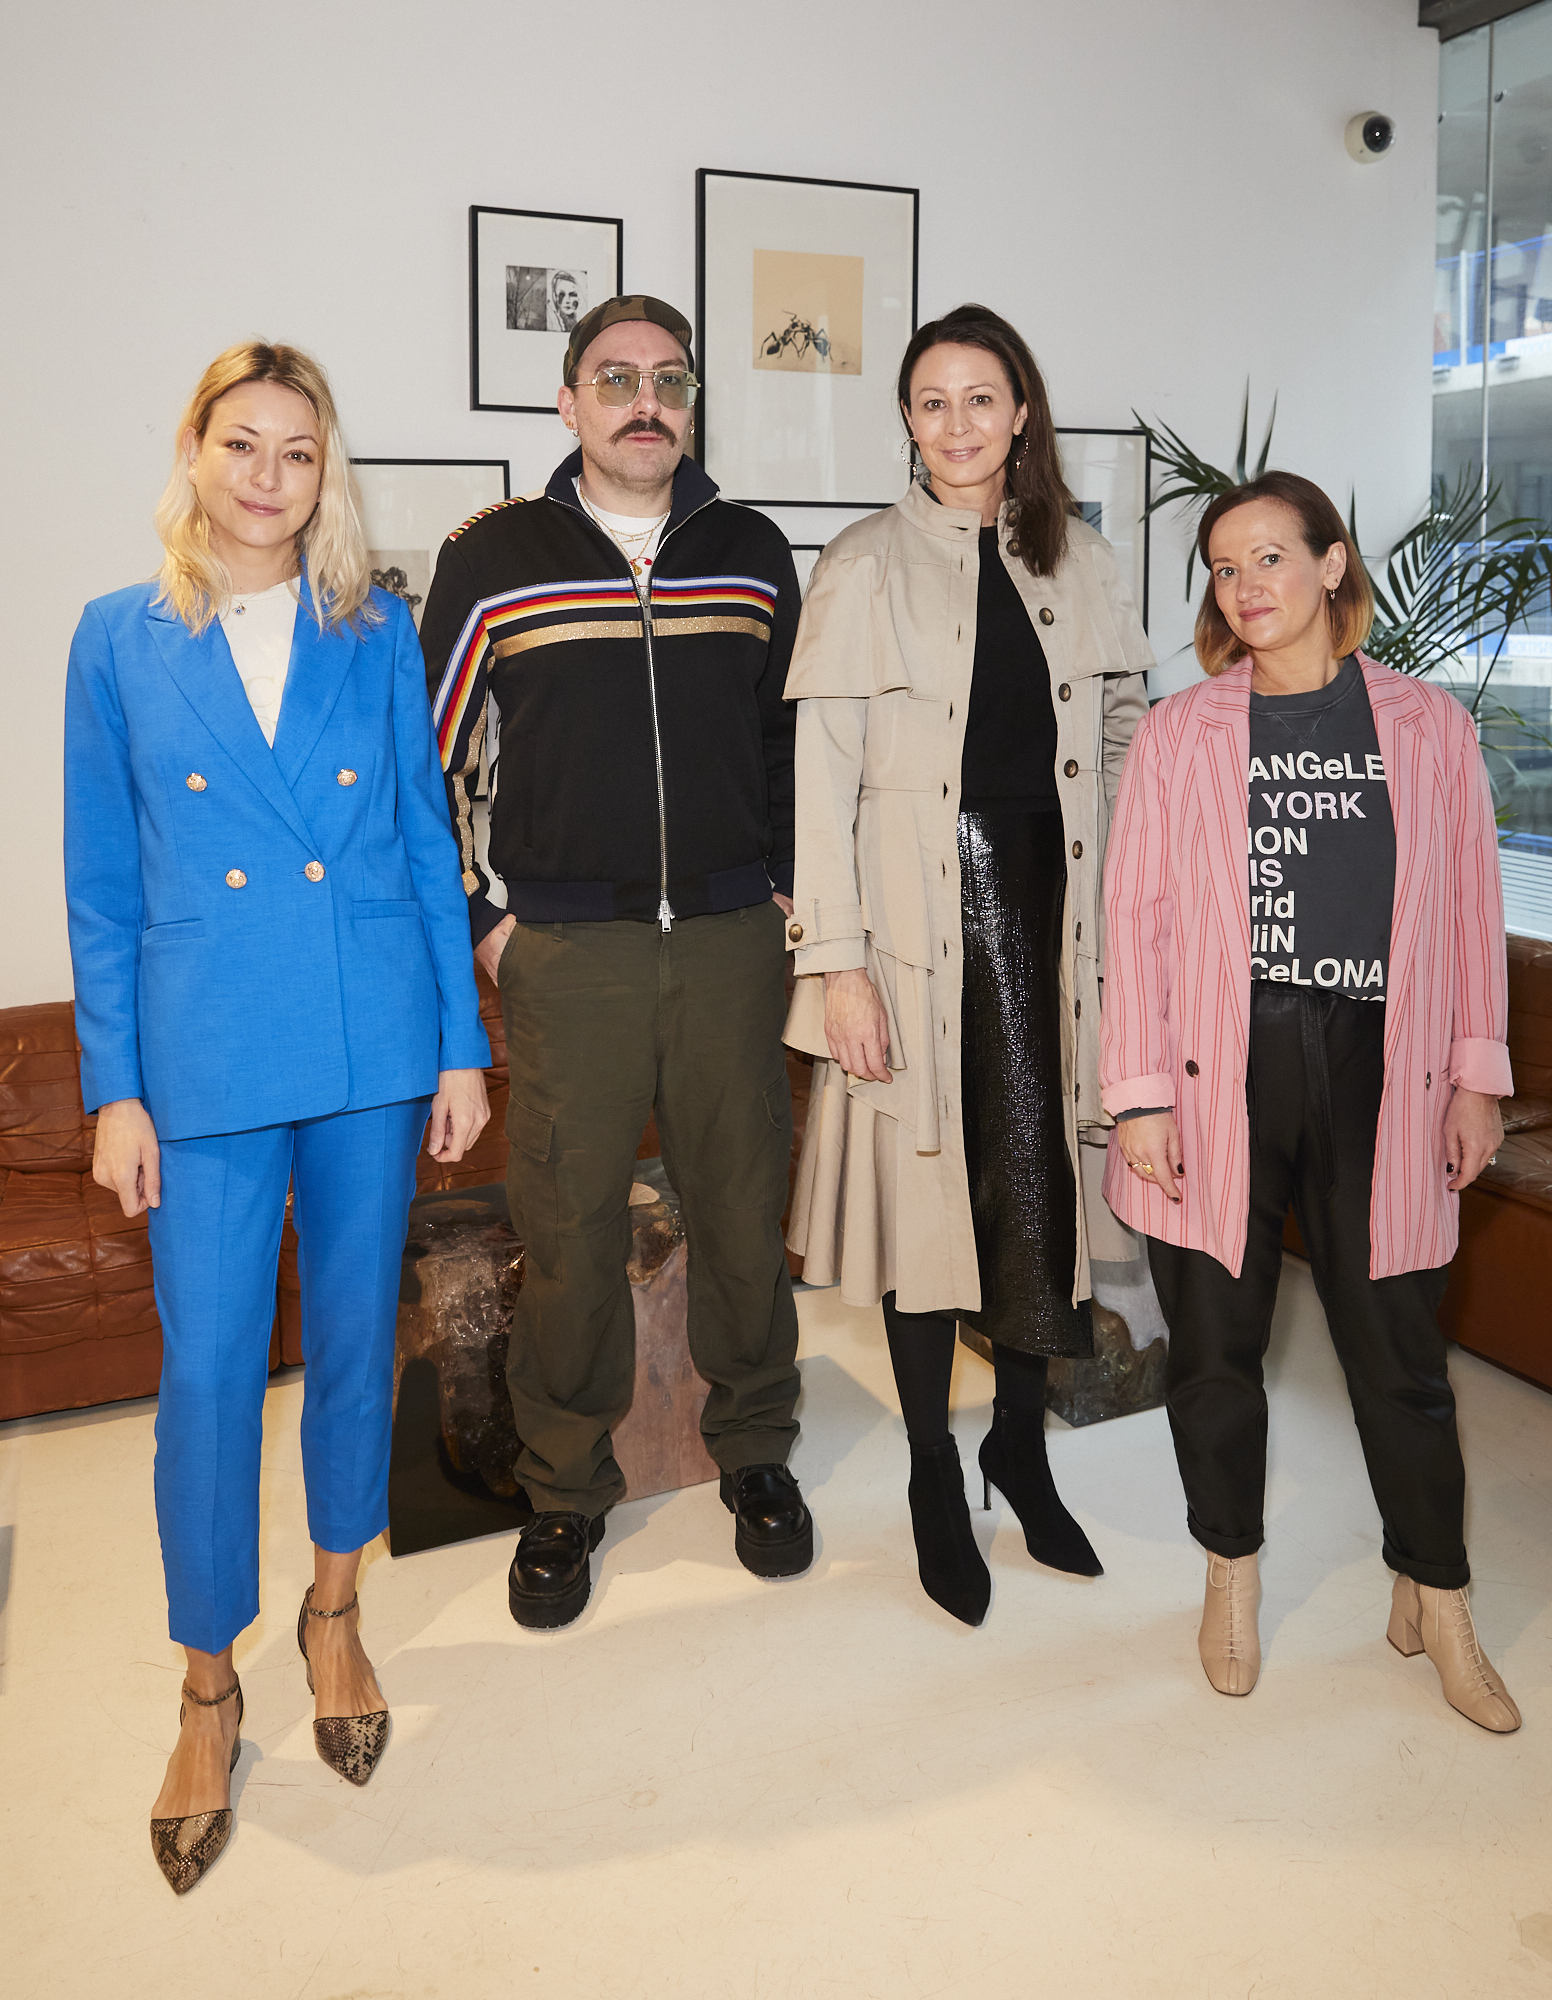 The British Fashion Council And Mtv Announce The Music Meets Fashion Competition For The Next Generation Of Fashion Designers In Collaboration With Iceberg And River Island Executive Bulletin